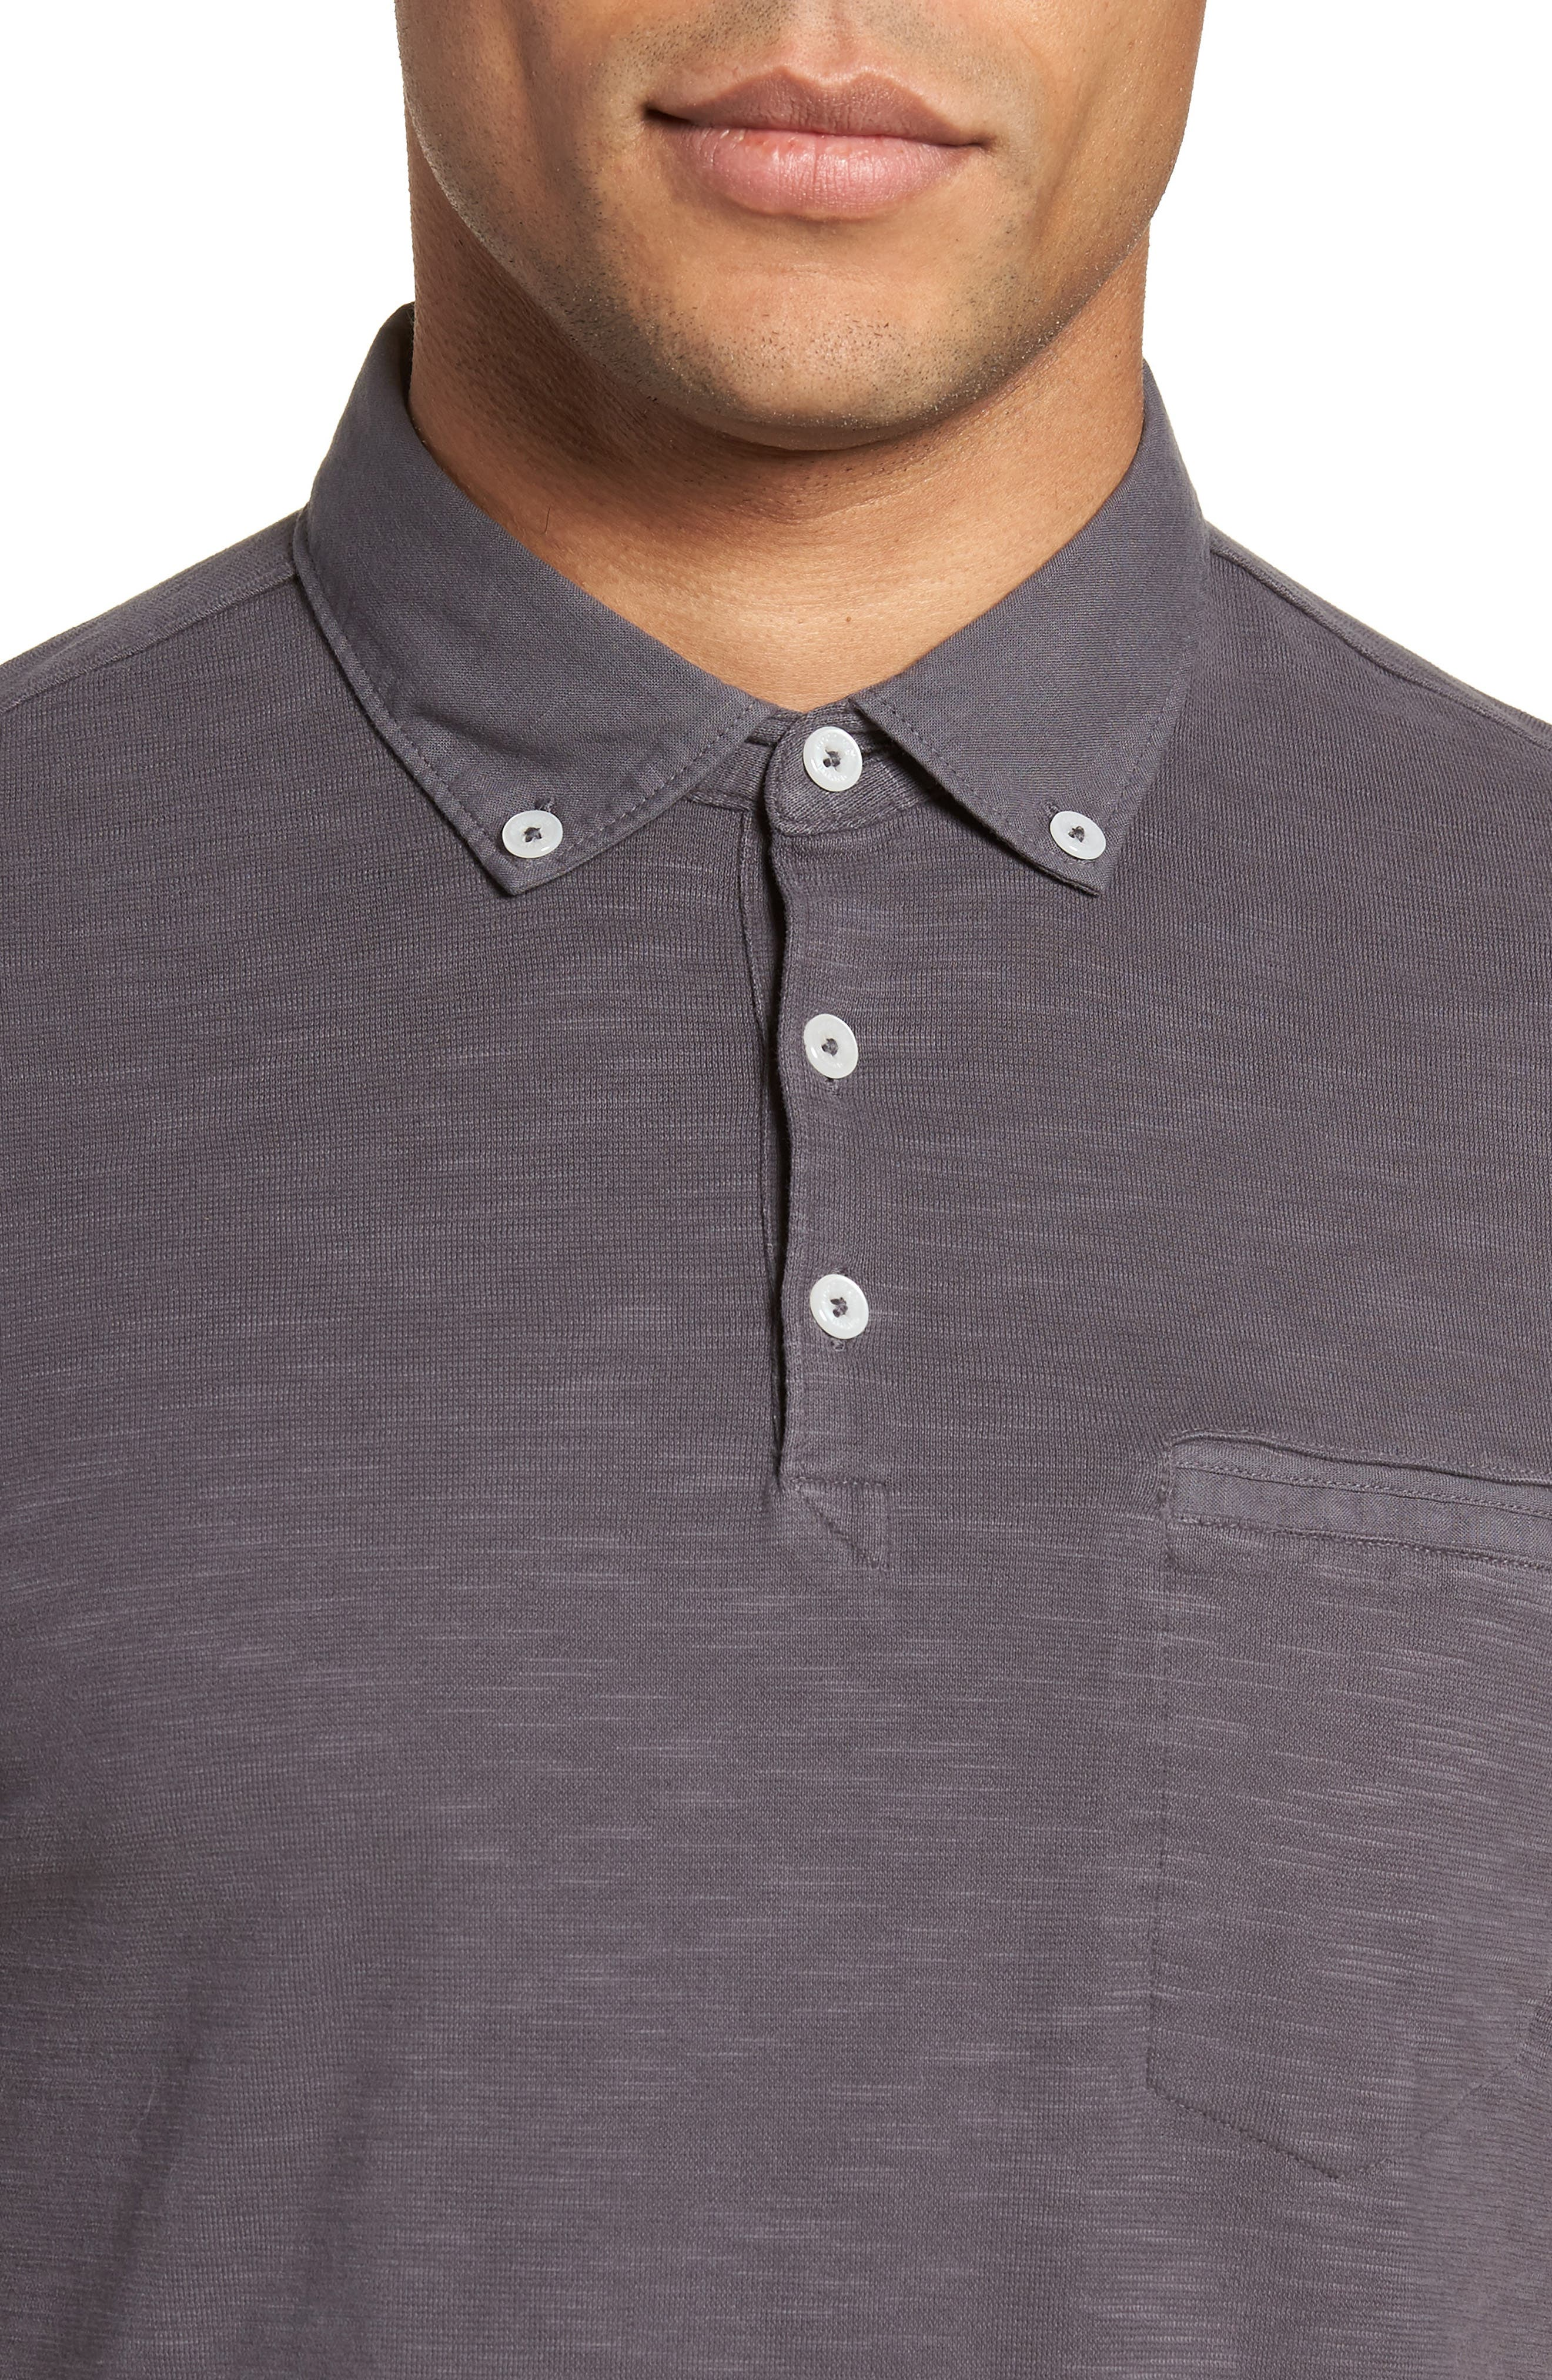 Slim Fit Polo,                             Alternate thumbnail 4, color,                             051